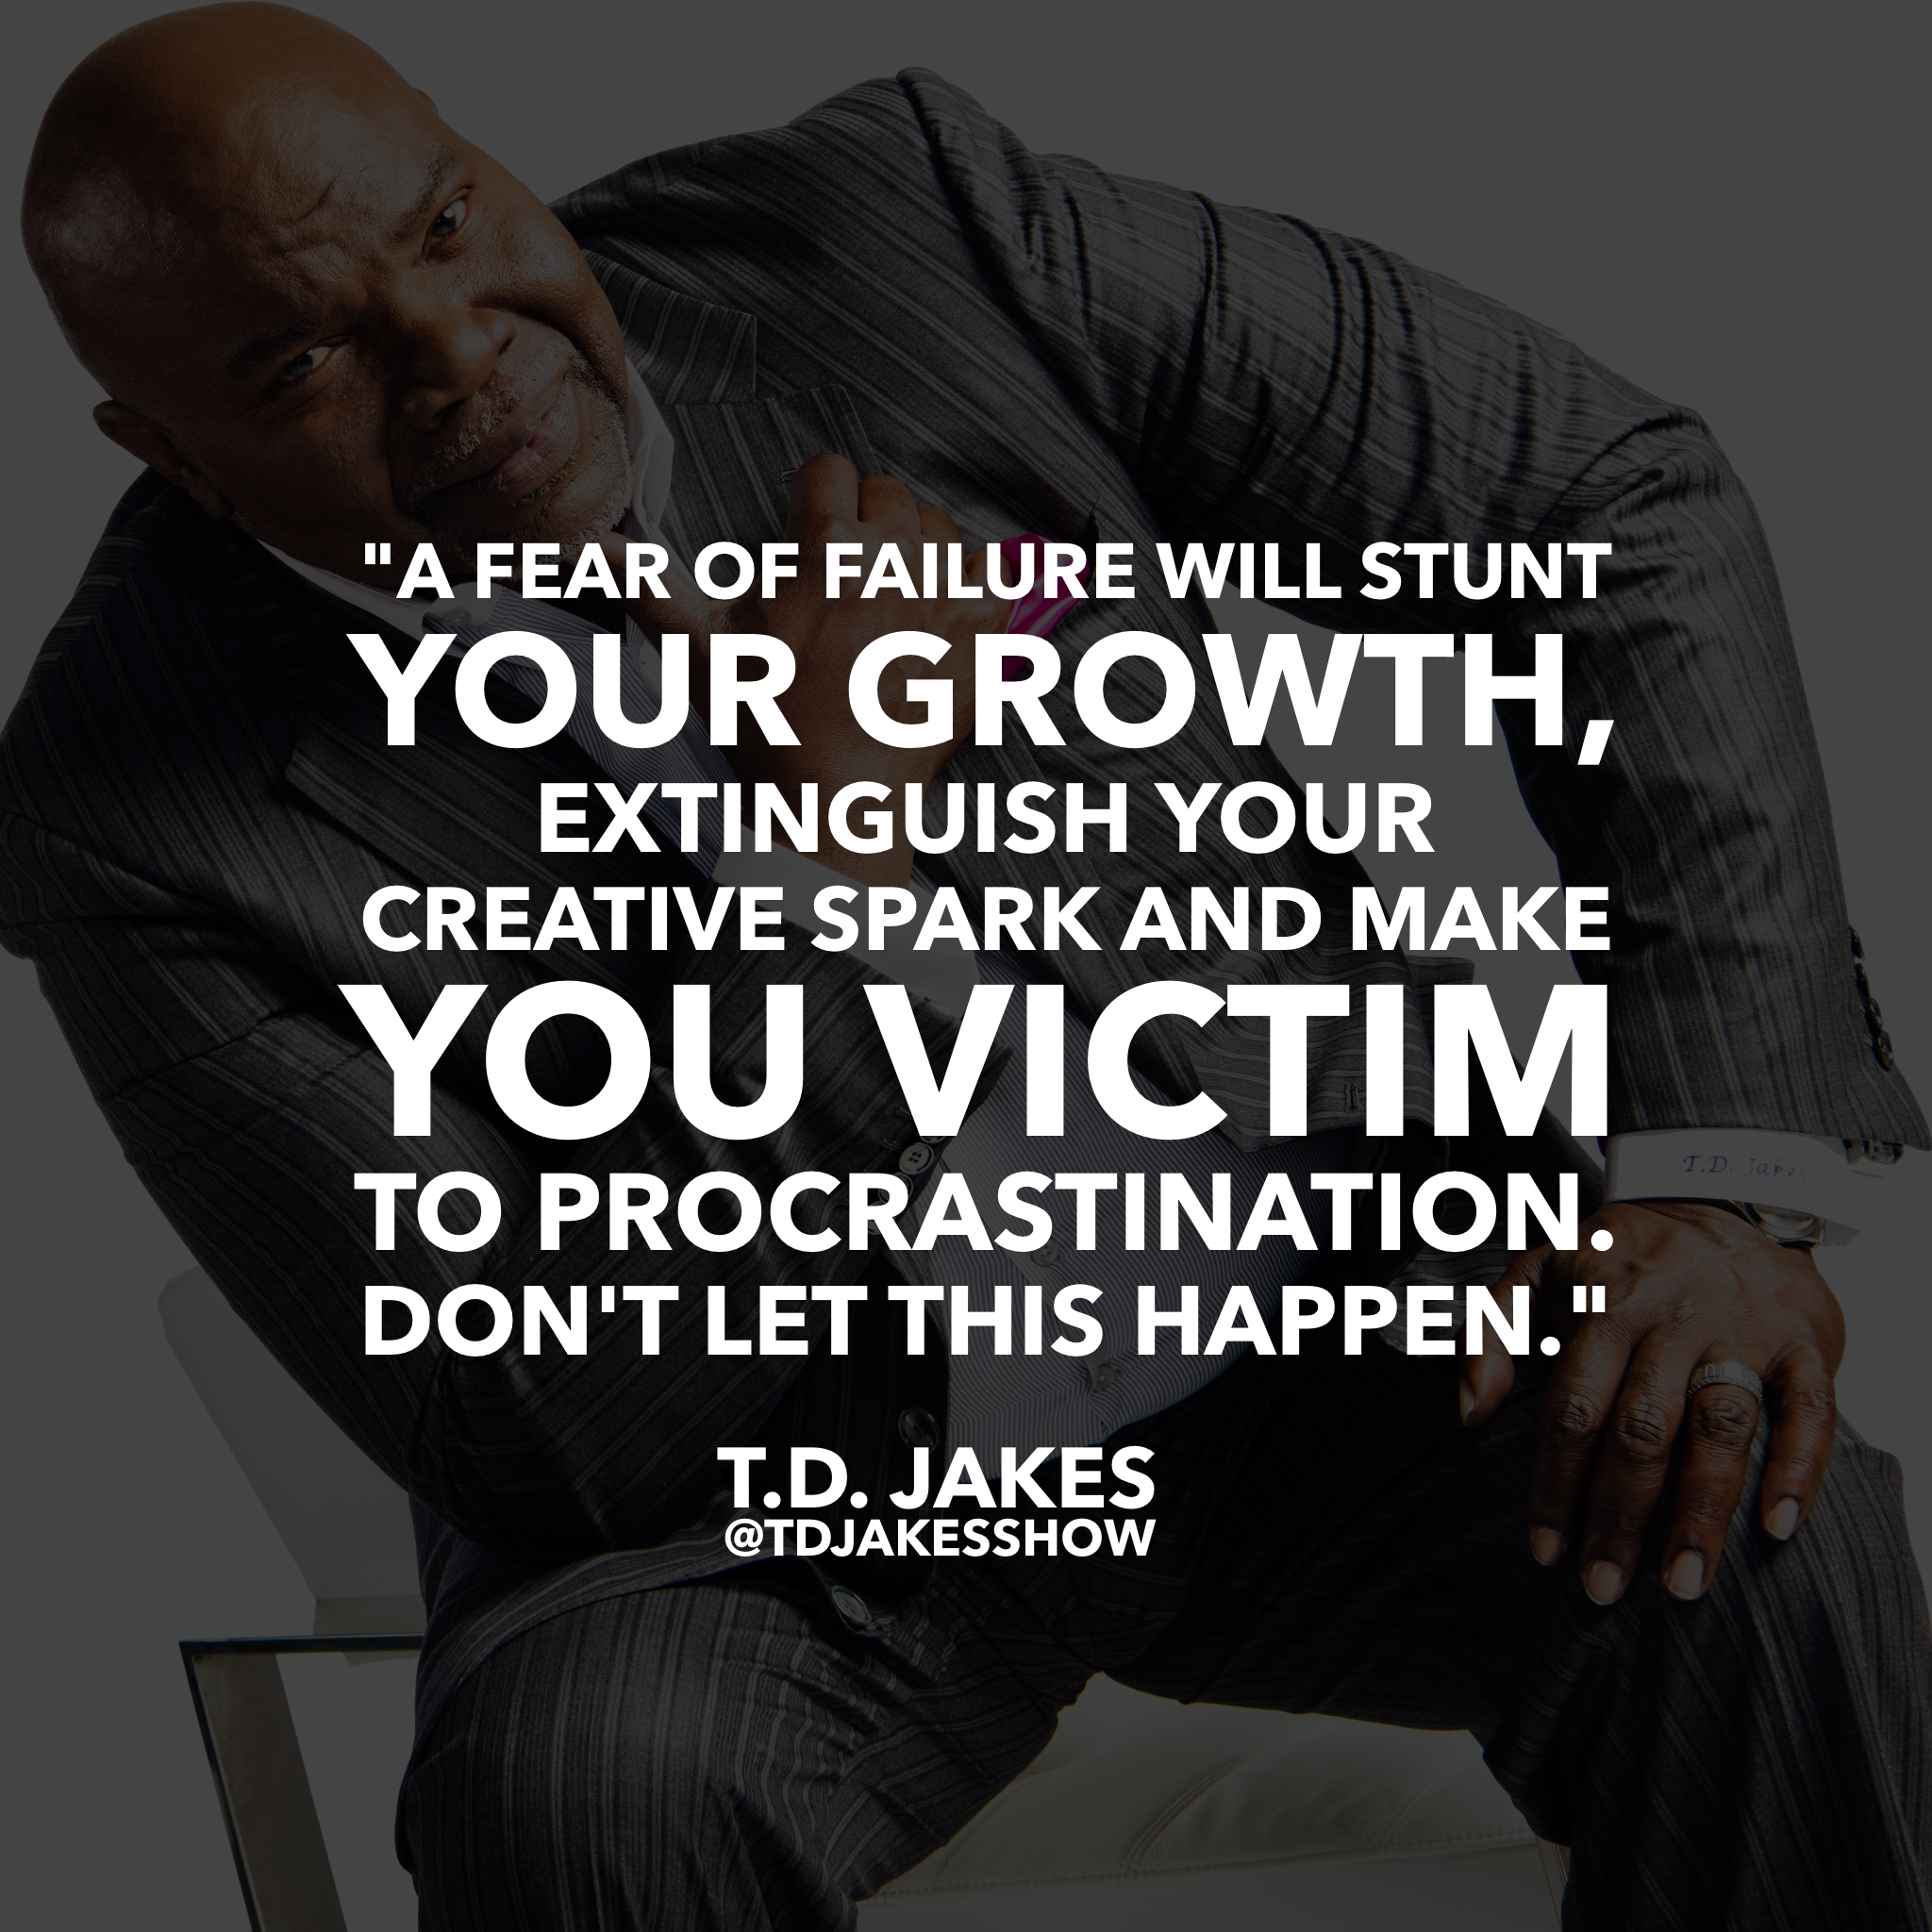 WiseWordsWednesday from T D  Jakes! More wisdom coming to